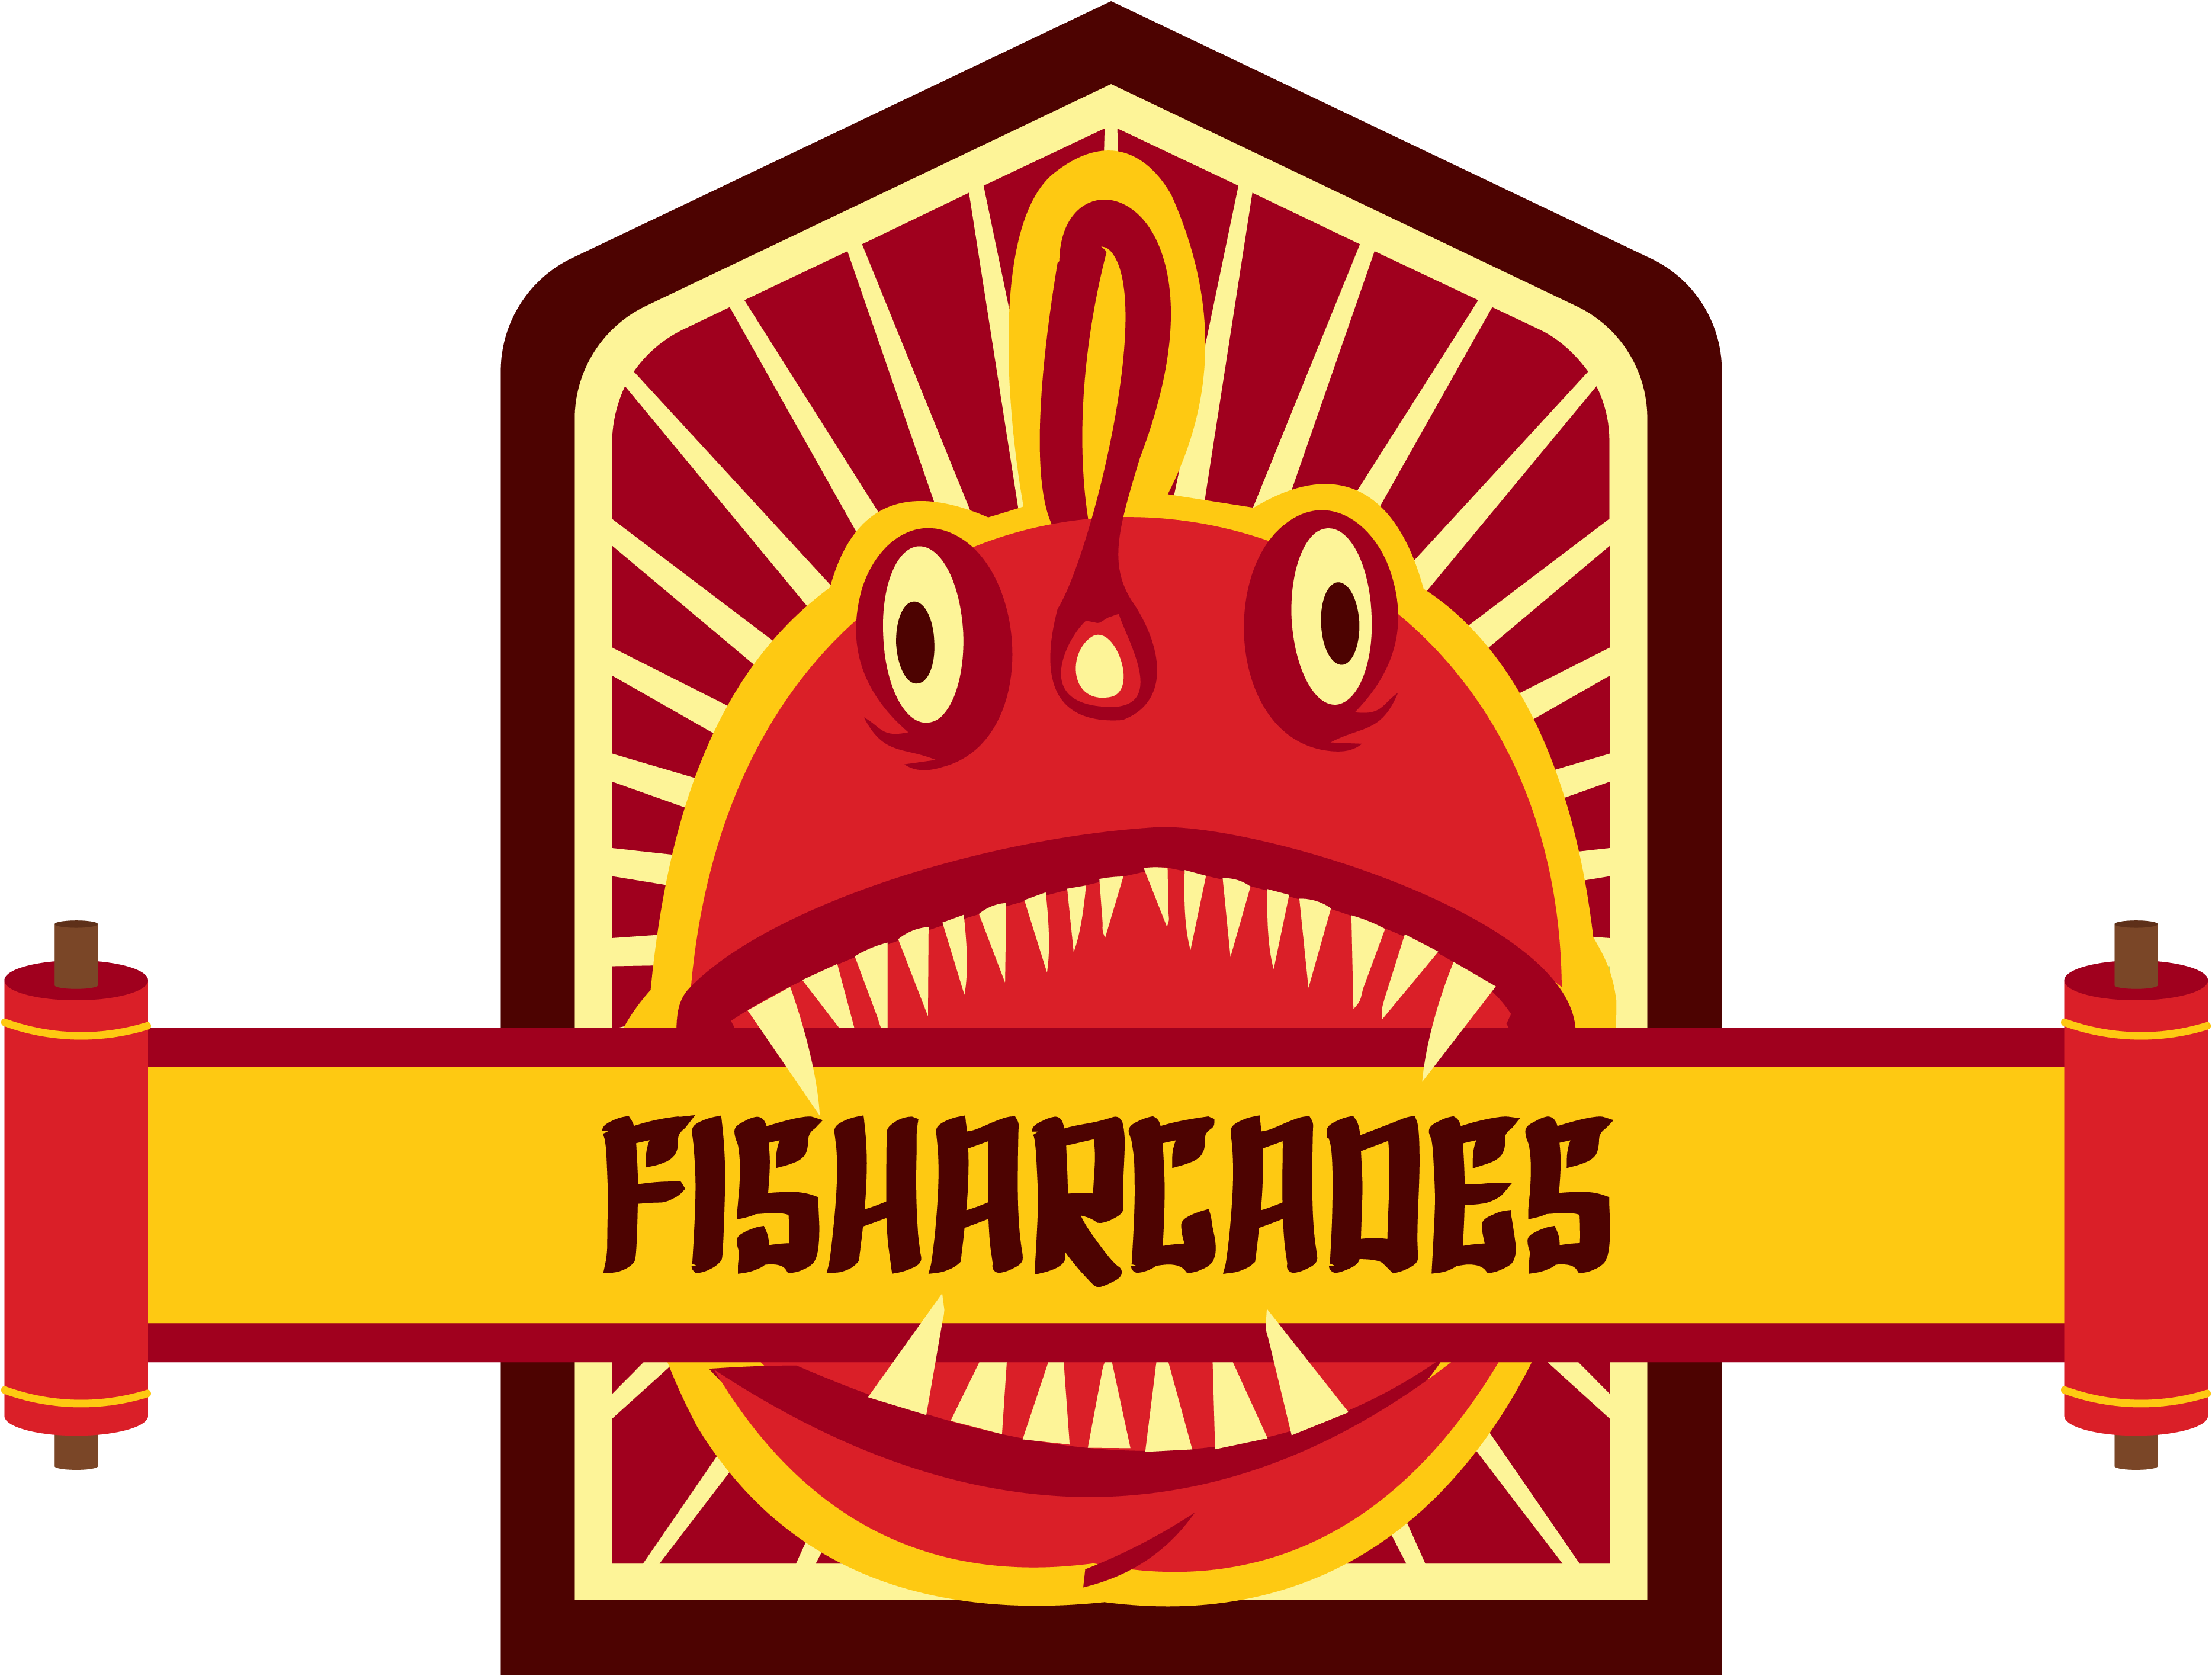 fisharcades games